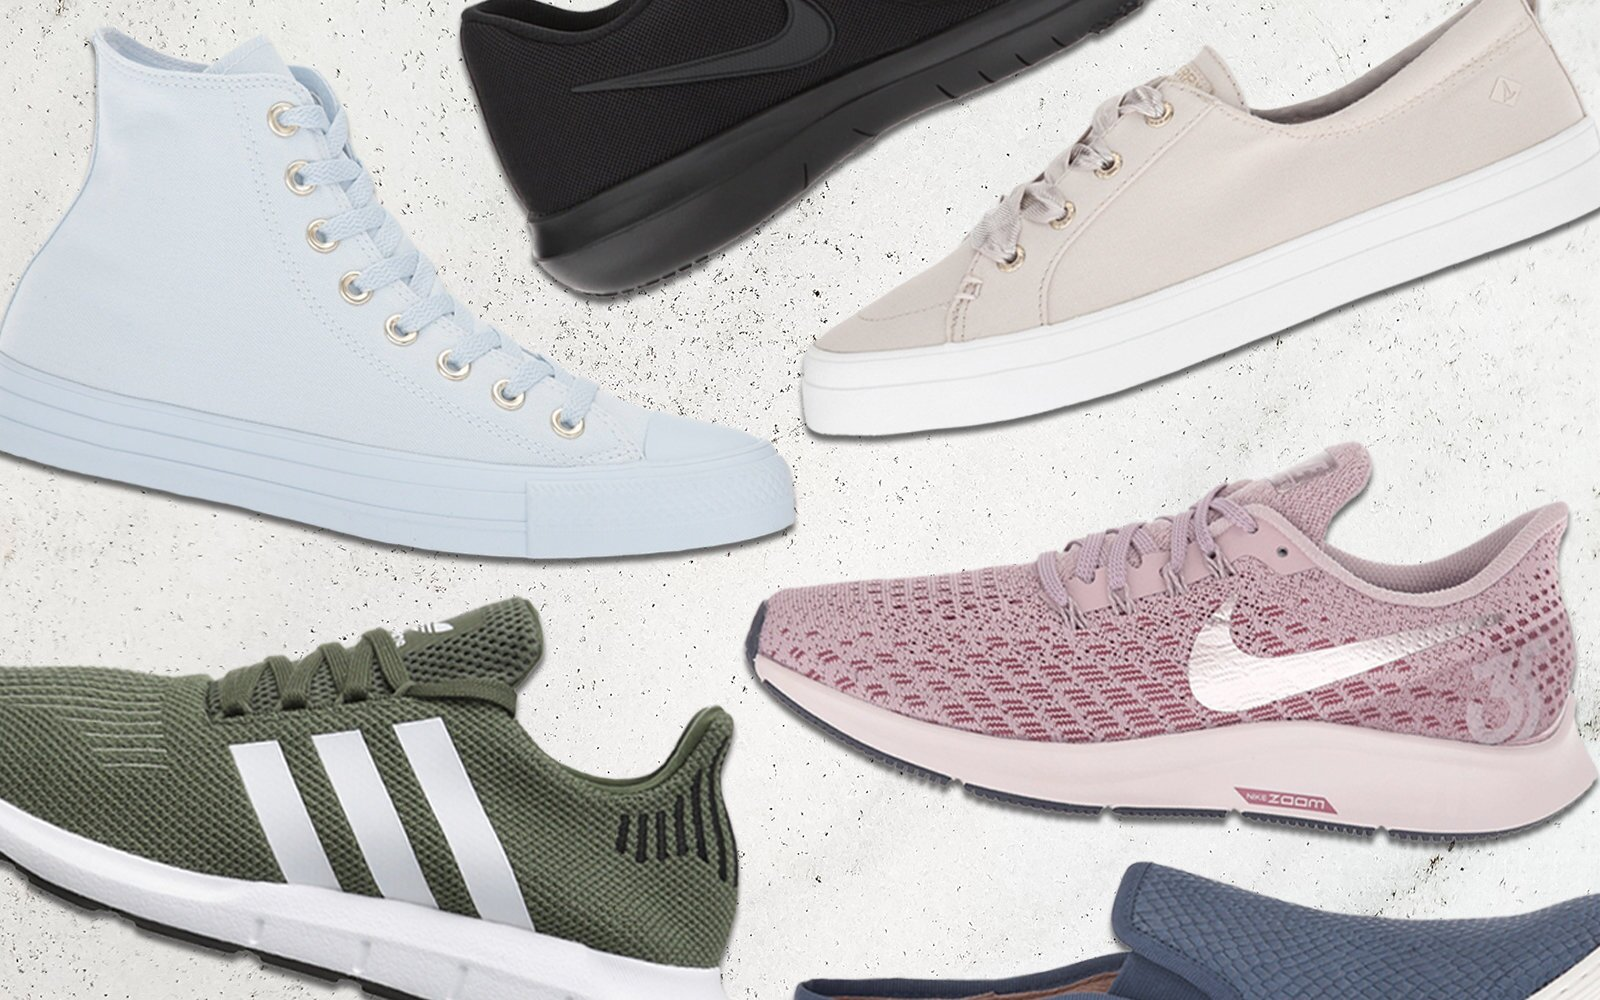 f4f75df91fa The Best Sneakers on Sale at Zappos Right Now | Travel + Leisure